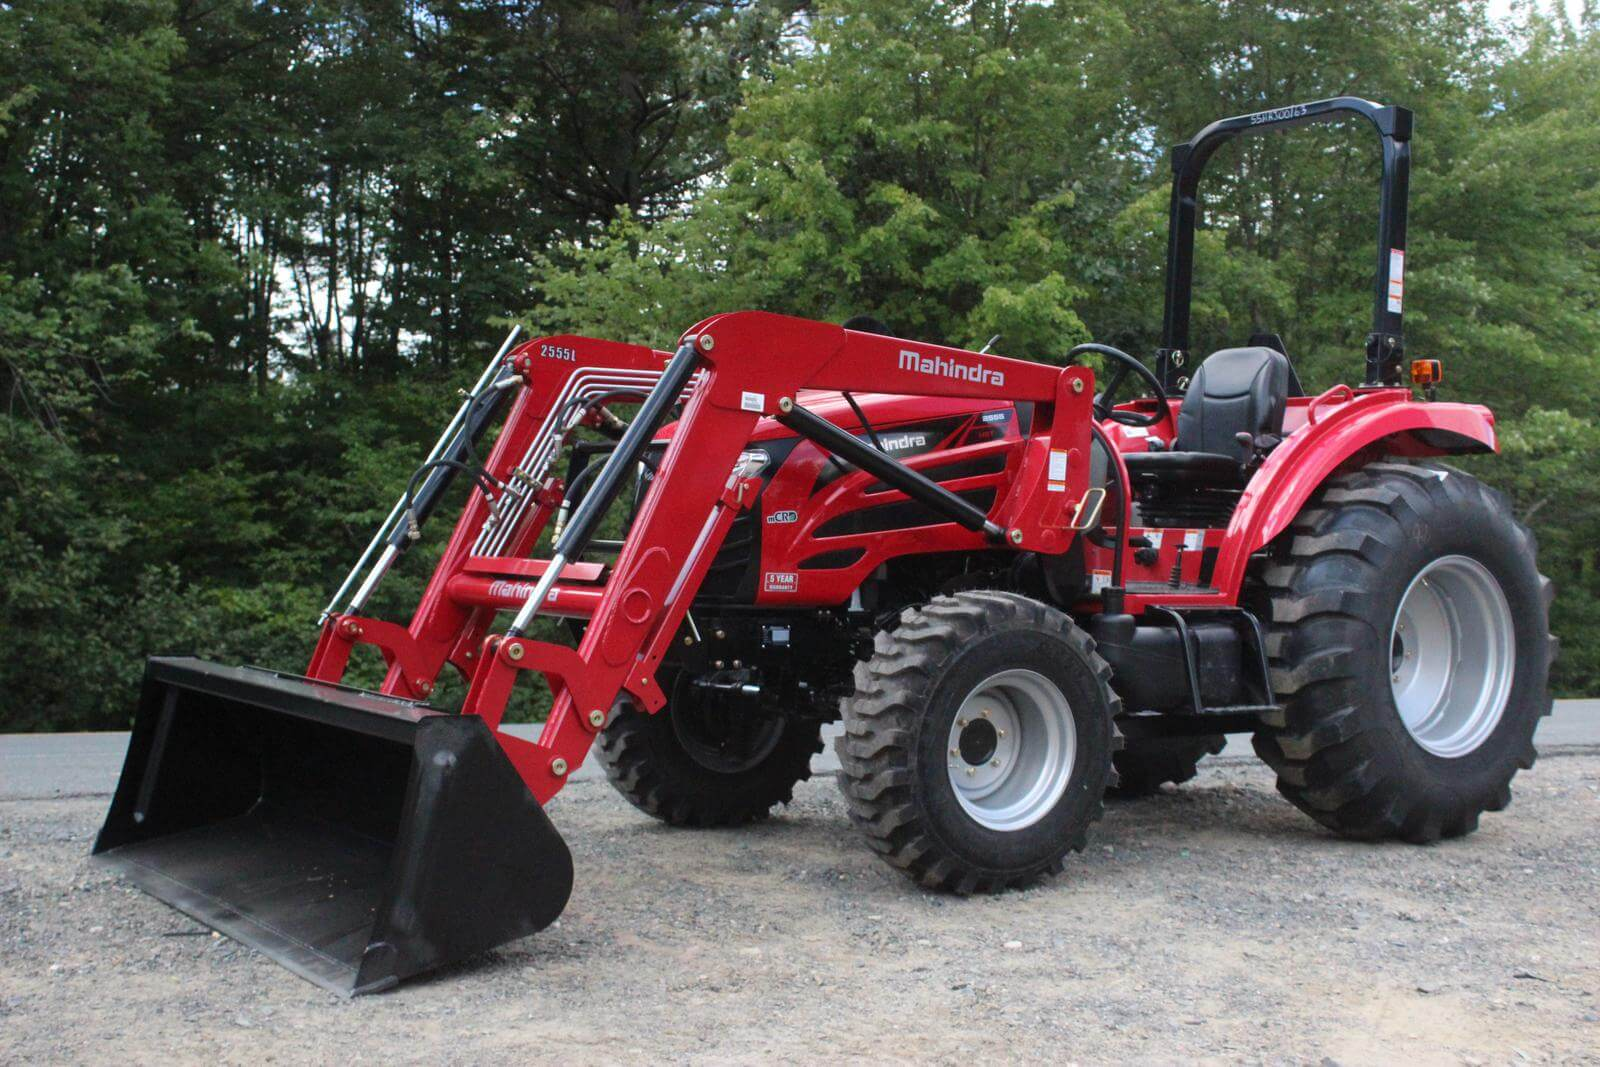 Mahindra 2555 HST Compact Tractor